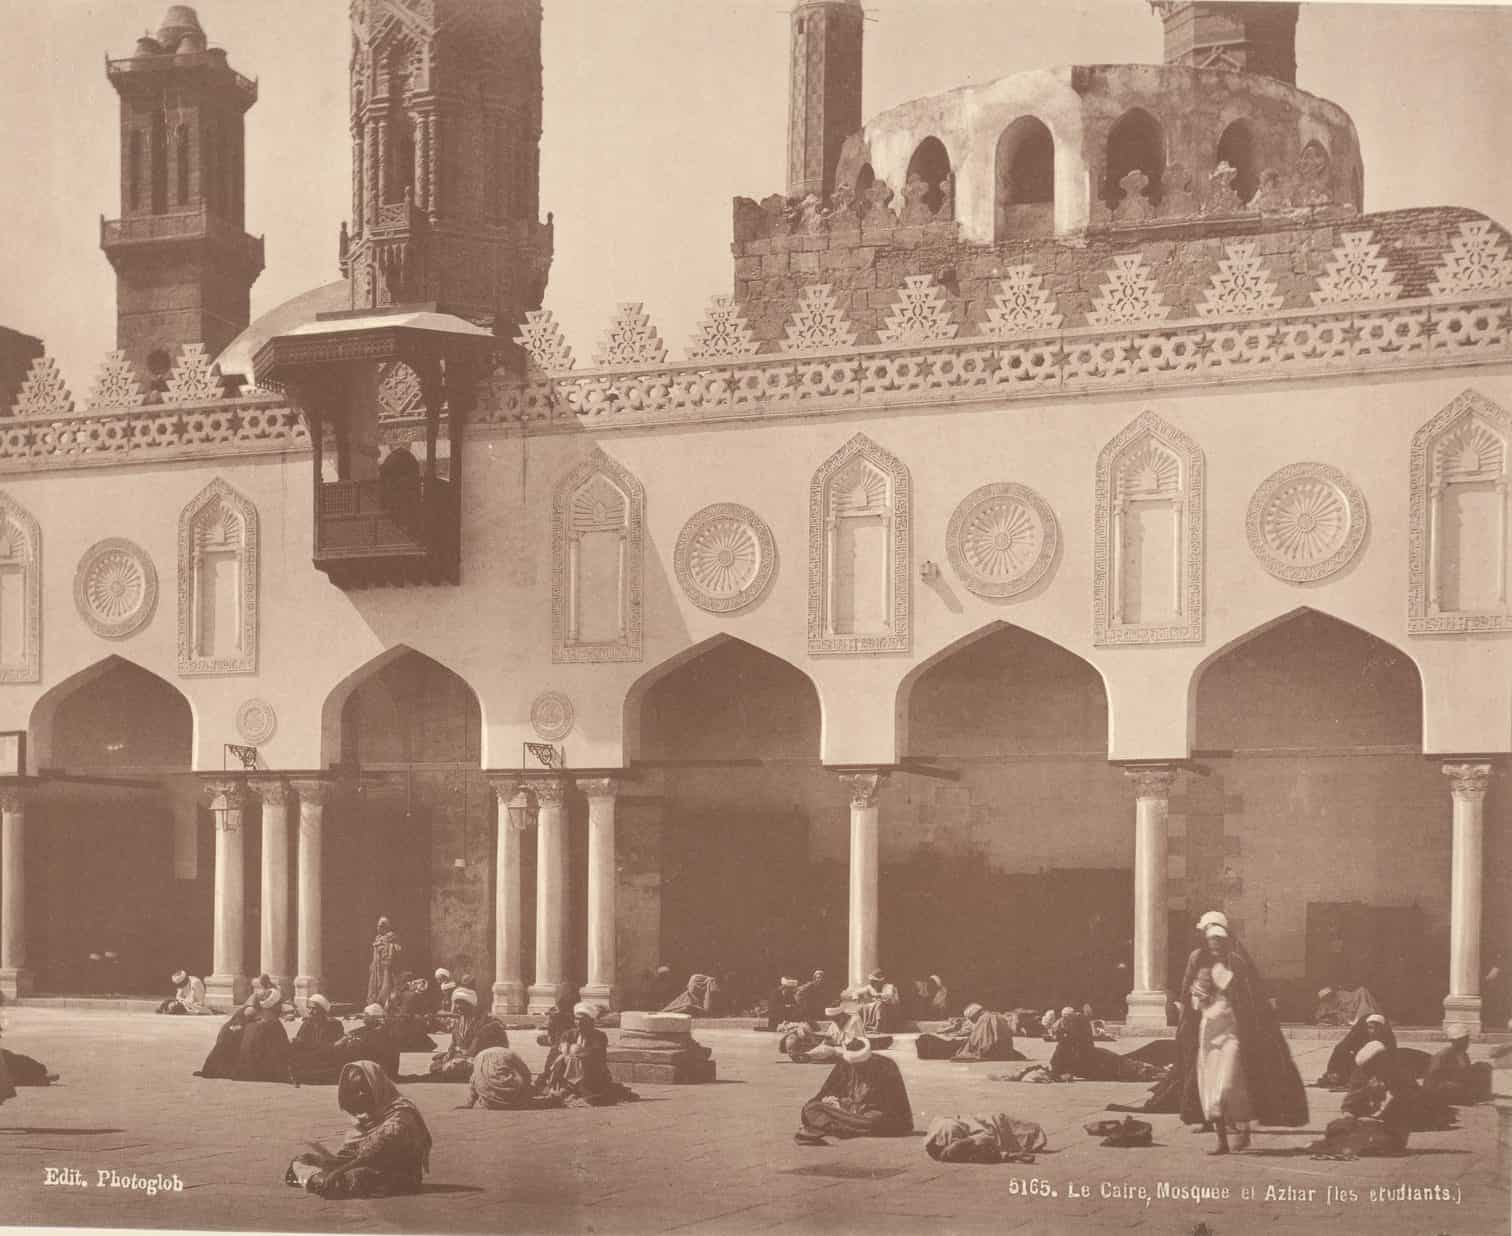 A photo of students at Al Azhar University in Cairo, the oldest degree-granting institution in Egypt